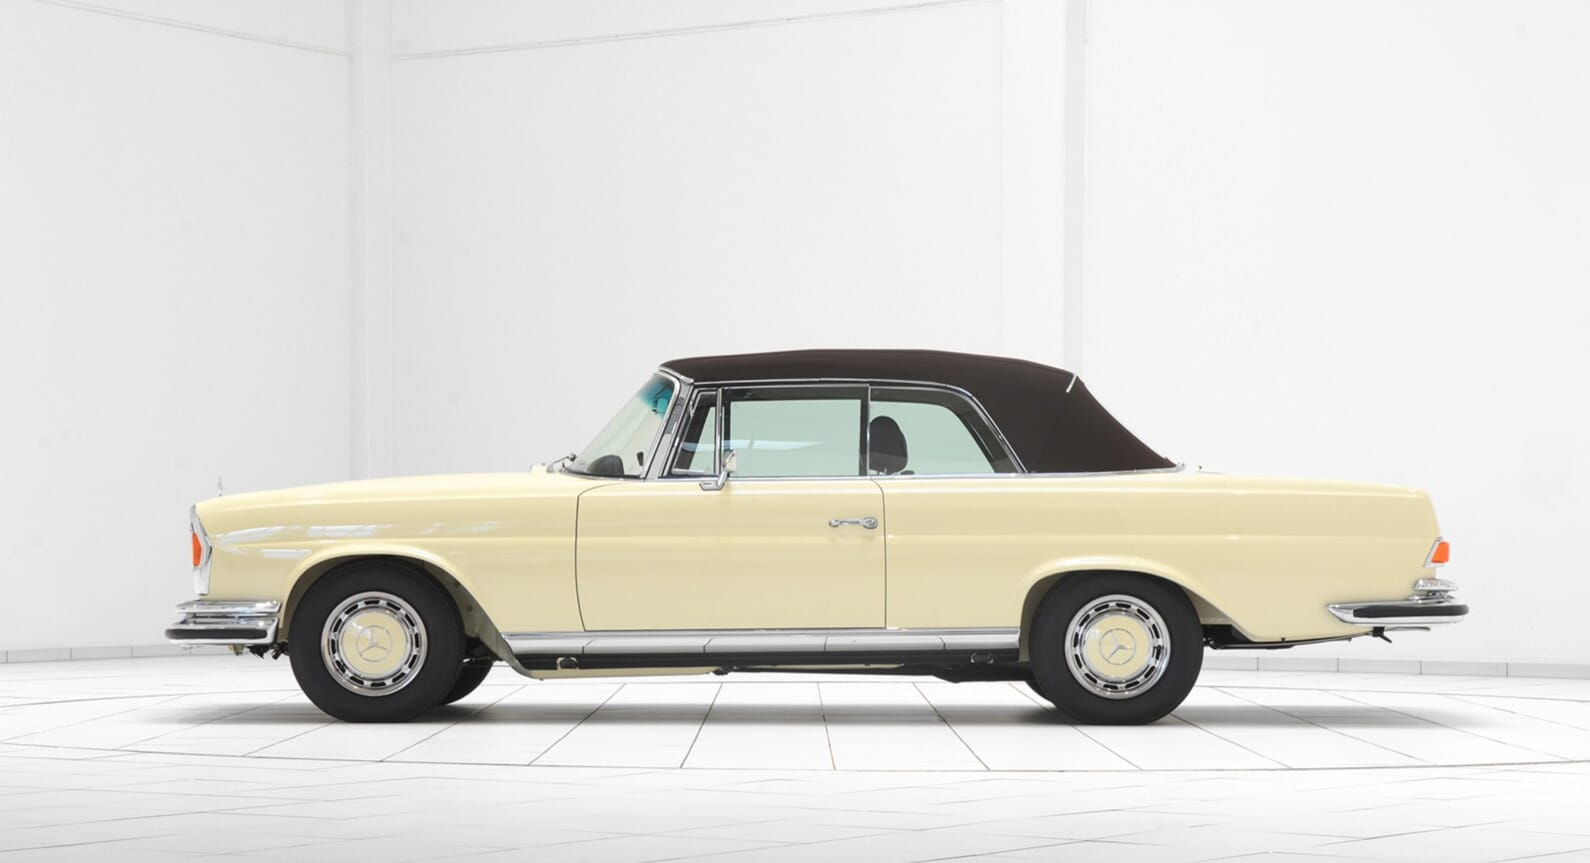 Why You Should Want This Brabus Re-Creation Of A 1969 Mercedes Benz 280SE